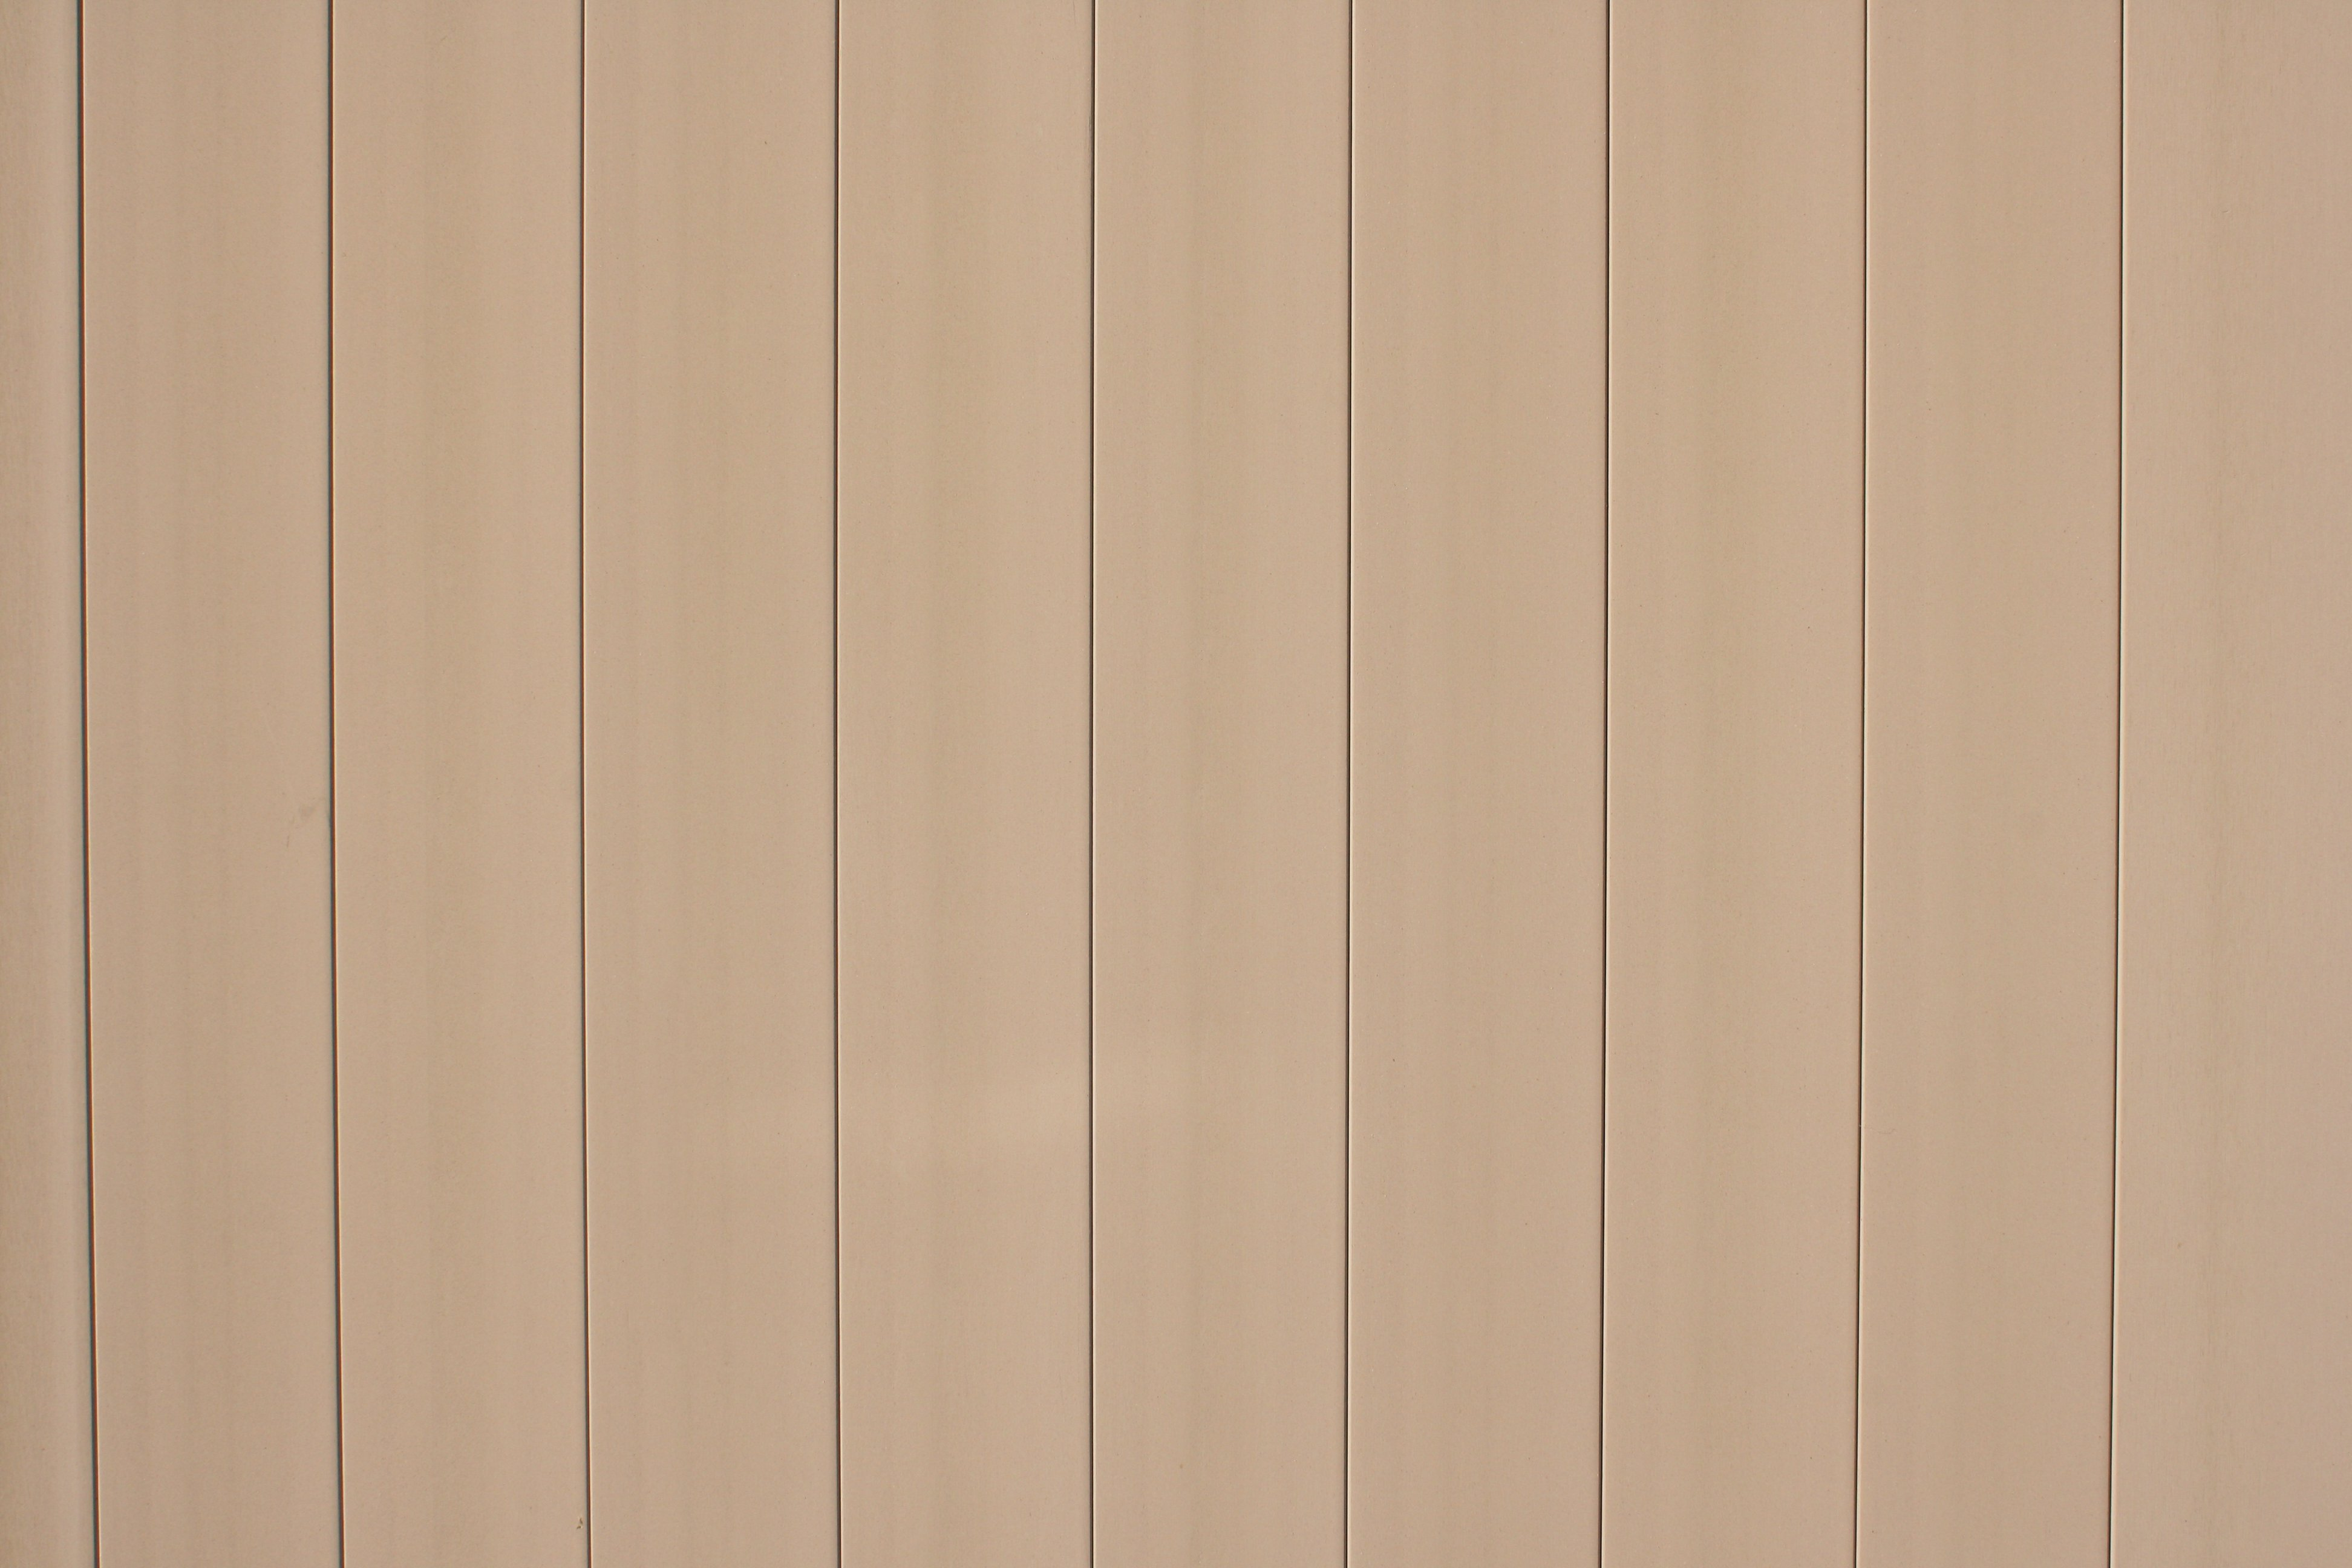 Tan Plastic Fence Boards Texture